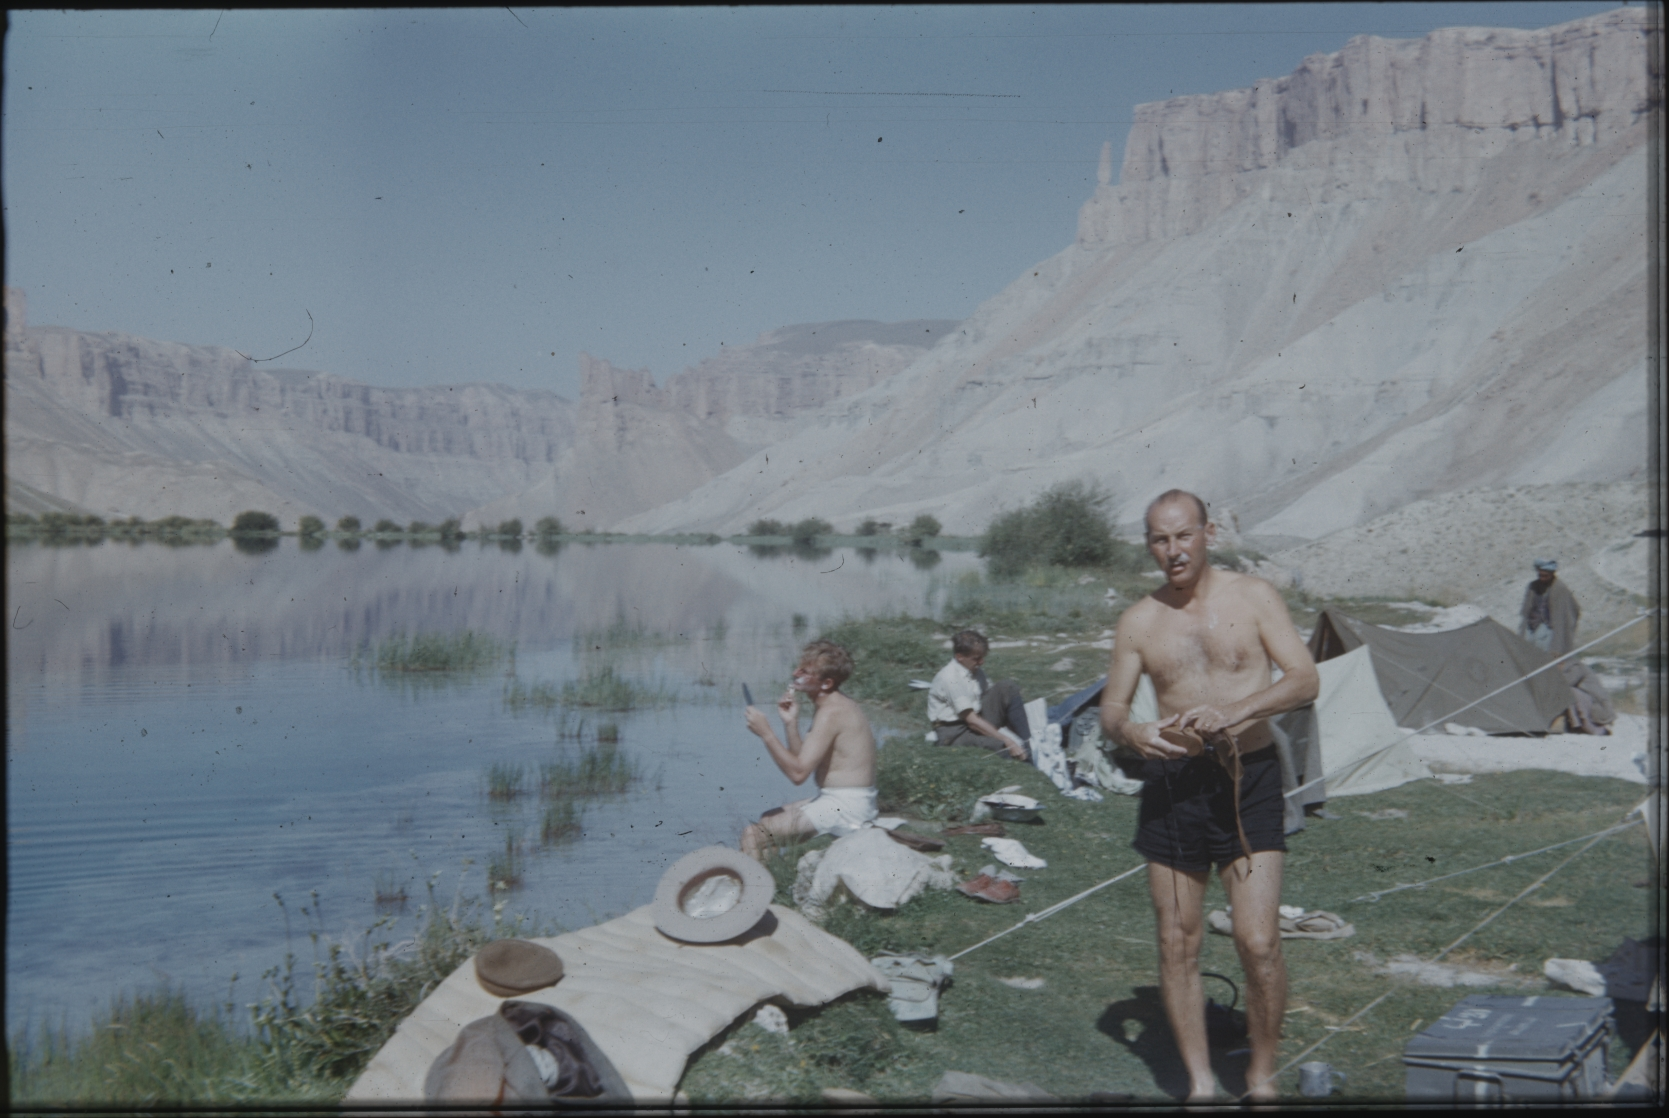 The members of the Henning Haslund-Christensen Memorial Expedition have set up camp on a riverbank. It is Prince Peter, the leader of the expedition, who strikes a pose in front. The Henning Haslund-Christensen Memorial Expedition, 1953-'55. Photo: the Moesgaard Museum archives